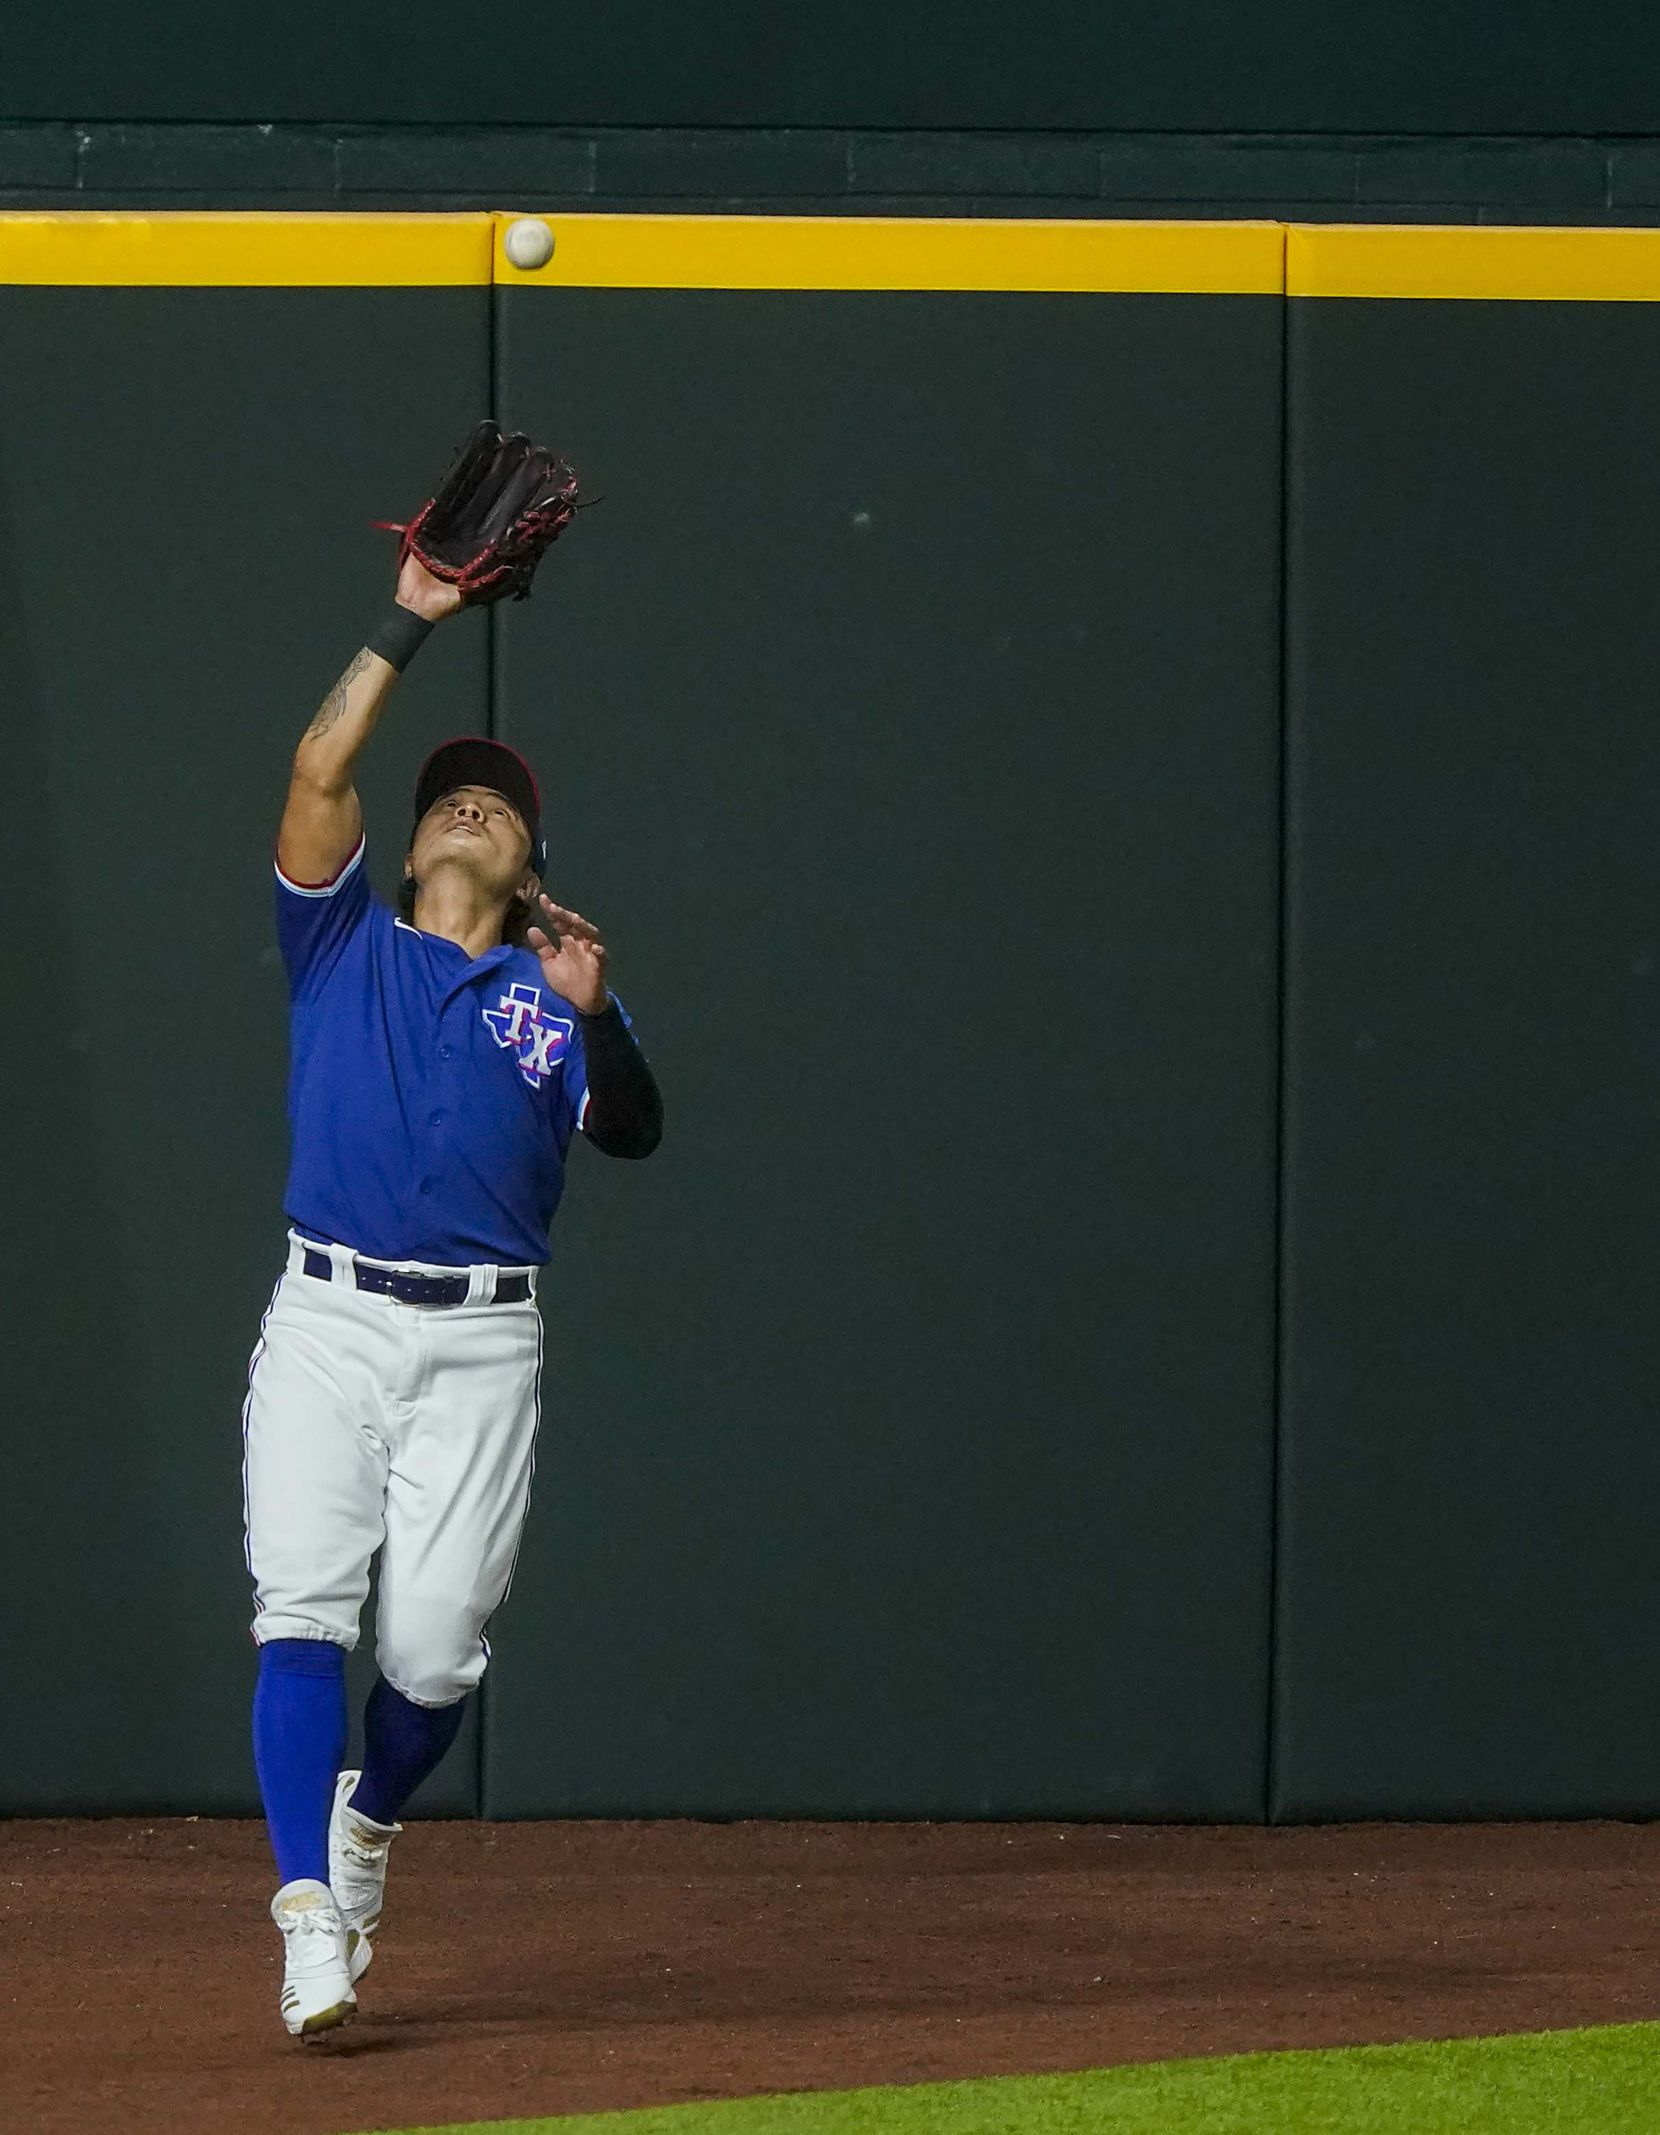 Texas Rangers outfielder Shin-Soo Choo makes a catch on the left field warning track on a fly ball of the bat of the Colorado Rockies Charlie Blackmon during the fifth inning of an exhibition game at Globe Life Field on Tuesday, July 21, 2020.